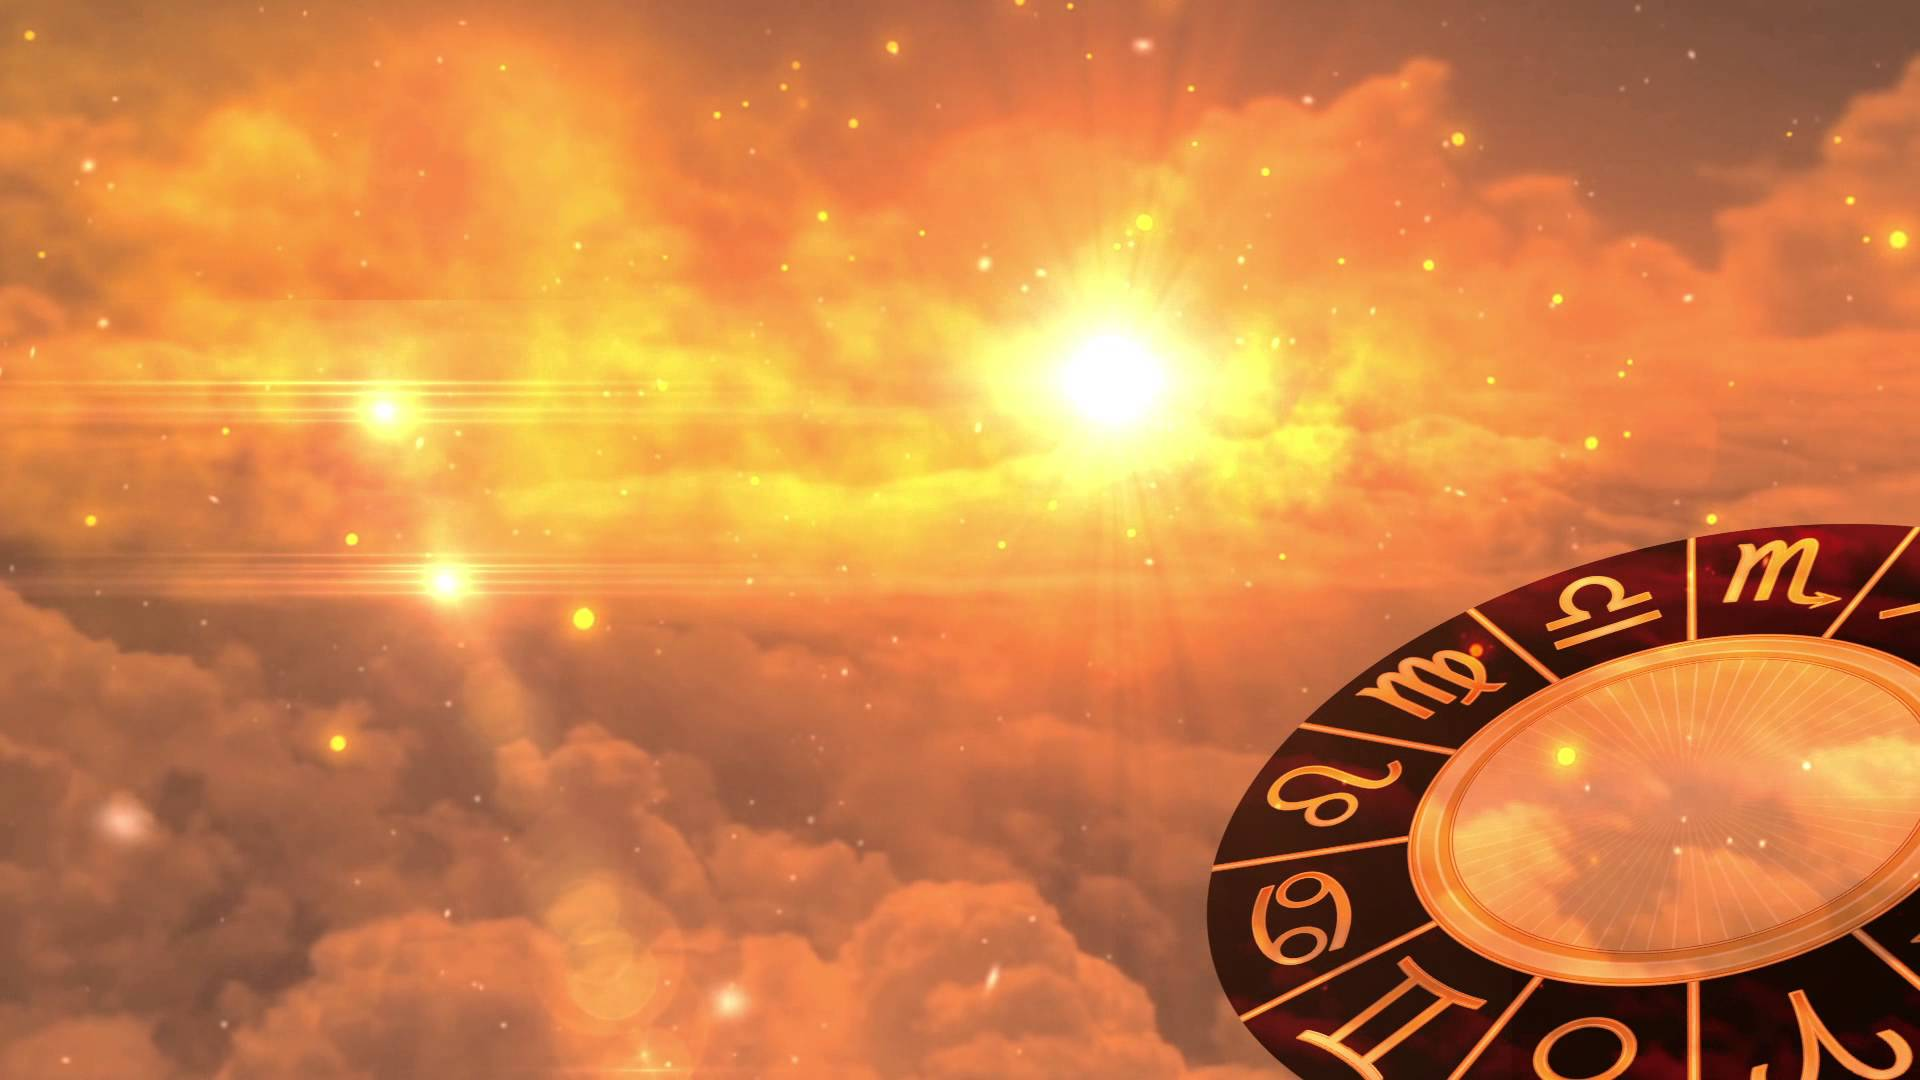 Free Download Astrology Background Images 1920x1080 For Your Desktop Mobile Tablet Explore 76 Horo Wallpaper Free Scary Halloween Wallpaper Hd Horror Wallpapers 1080p Dark Horror Wallpaper